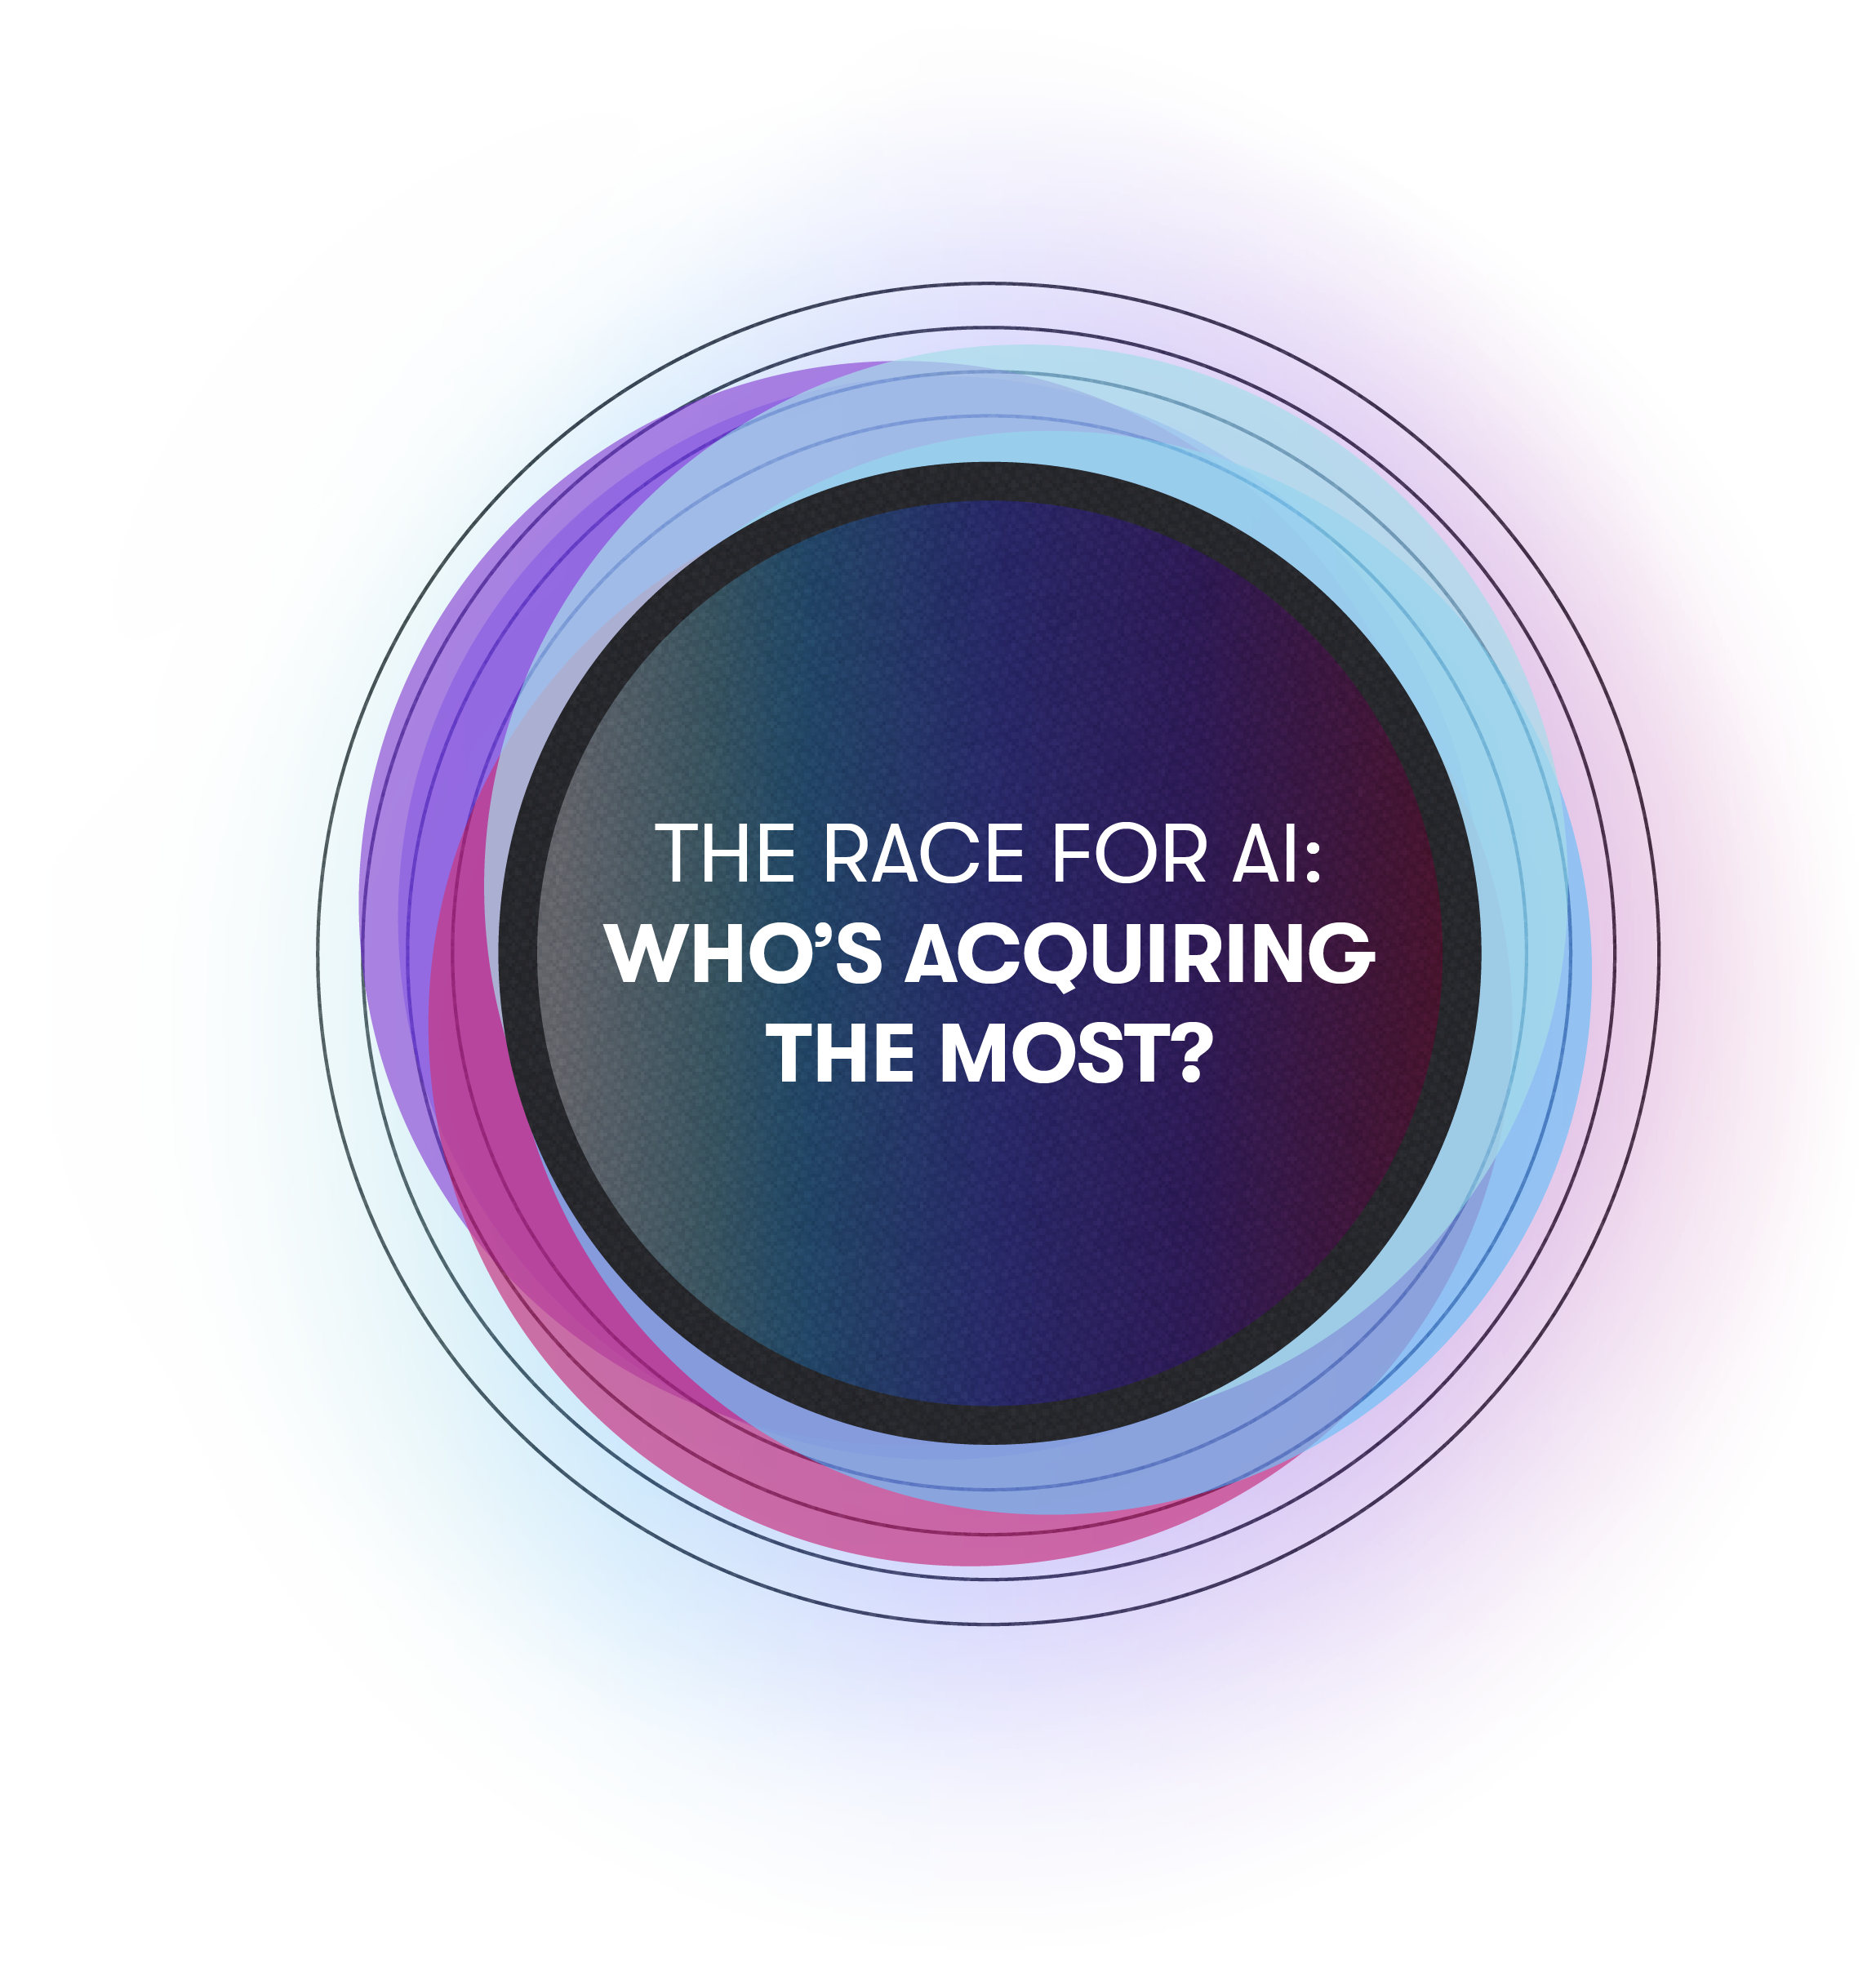 The Race For AI: Who's Acquiring The Most?